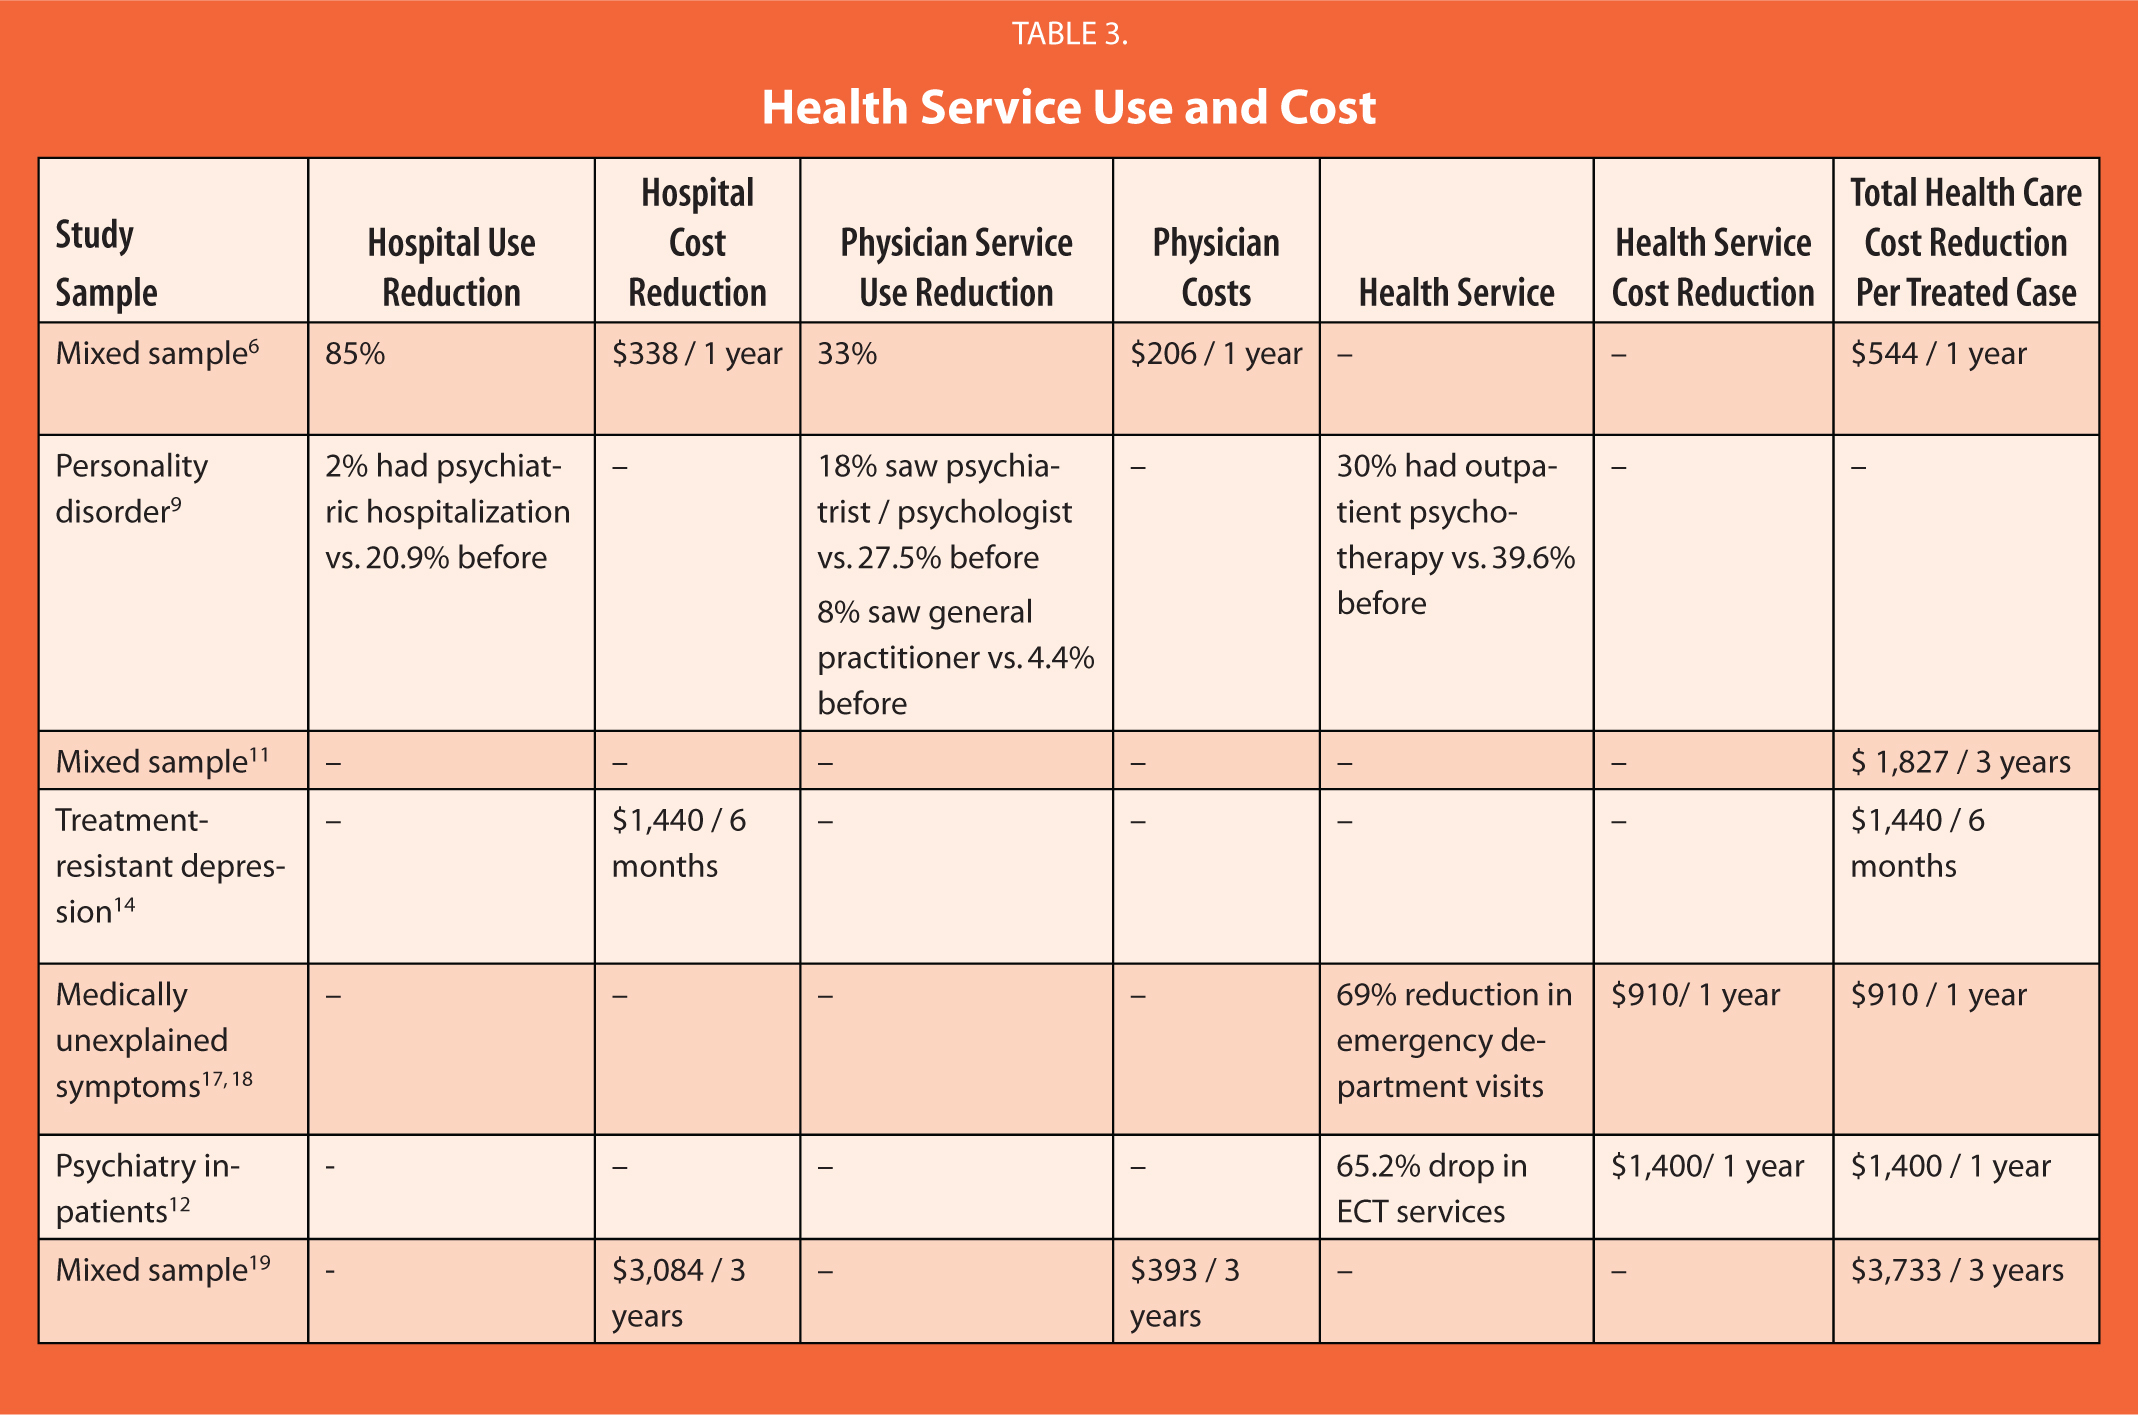 Health Service Use and Cost